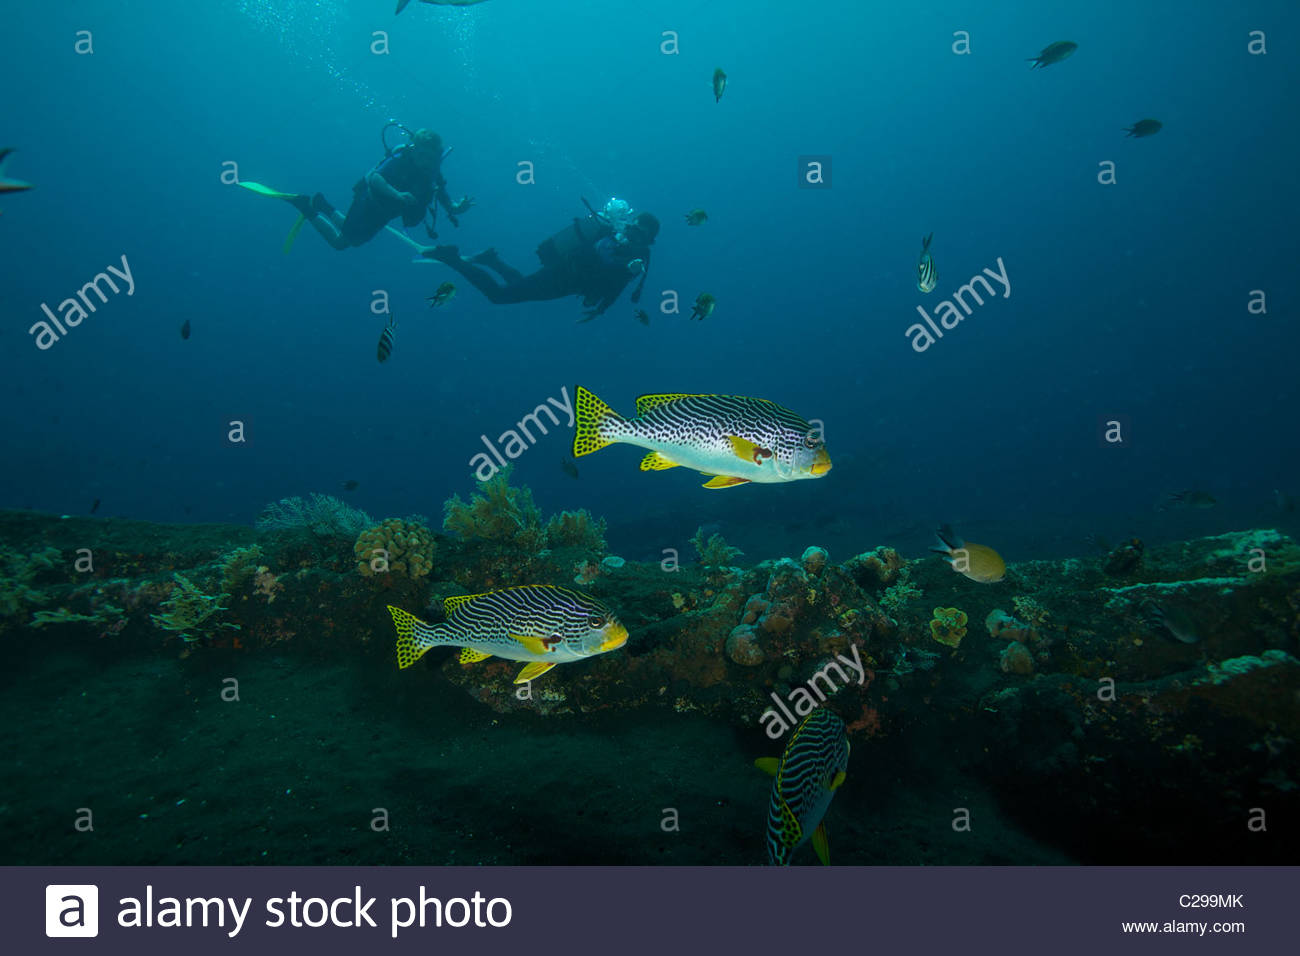 Divers at the Liberty wreck with diagonal-banded sweetlips fish. - Stock Image